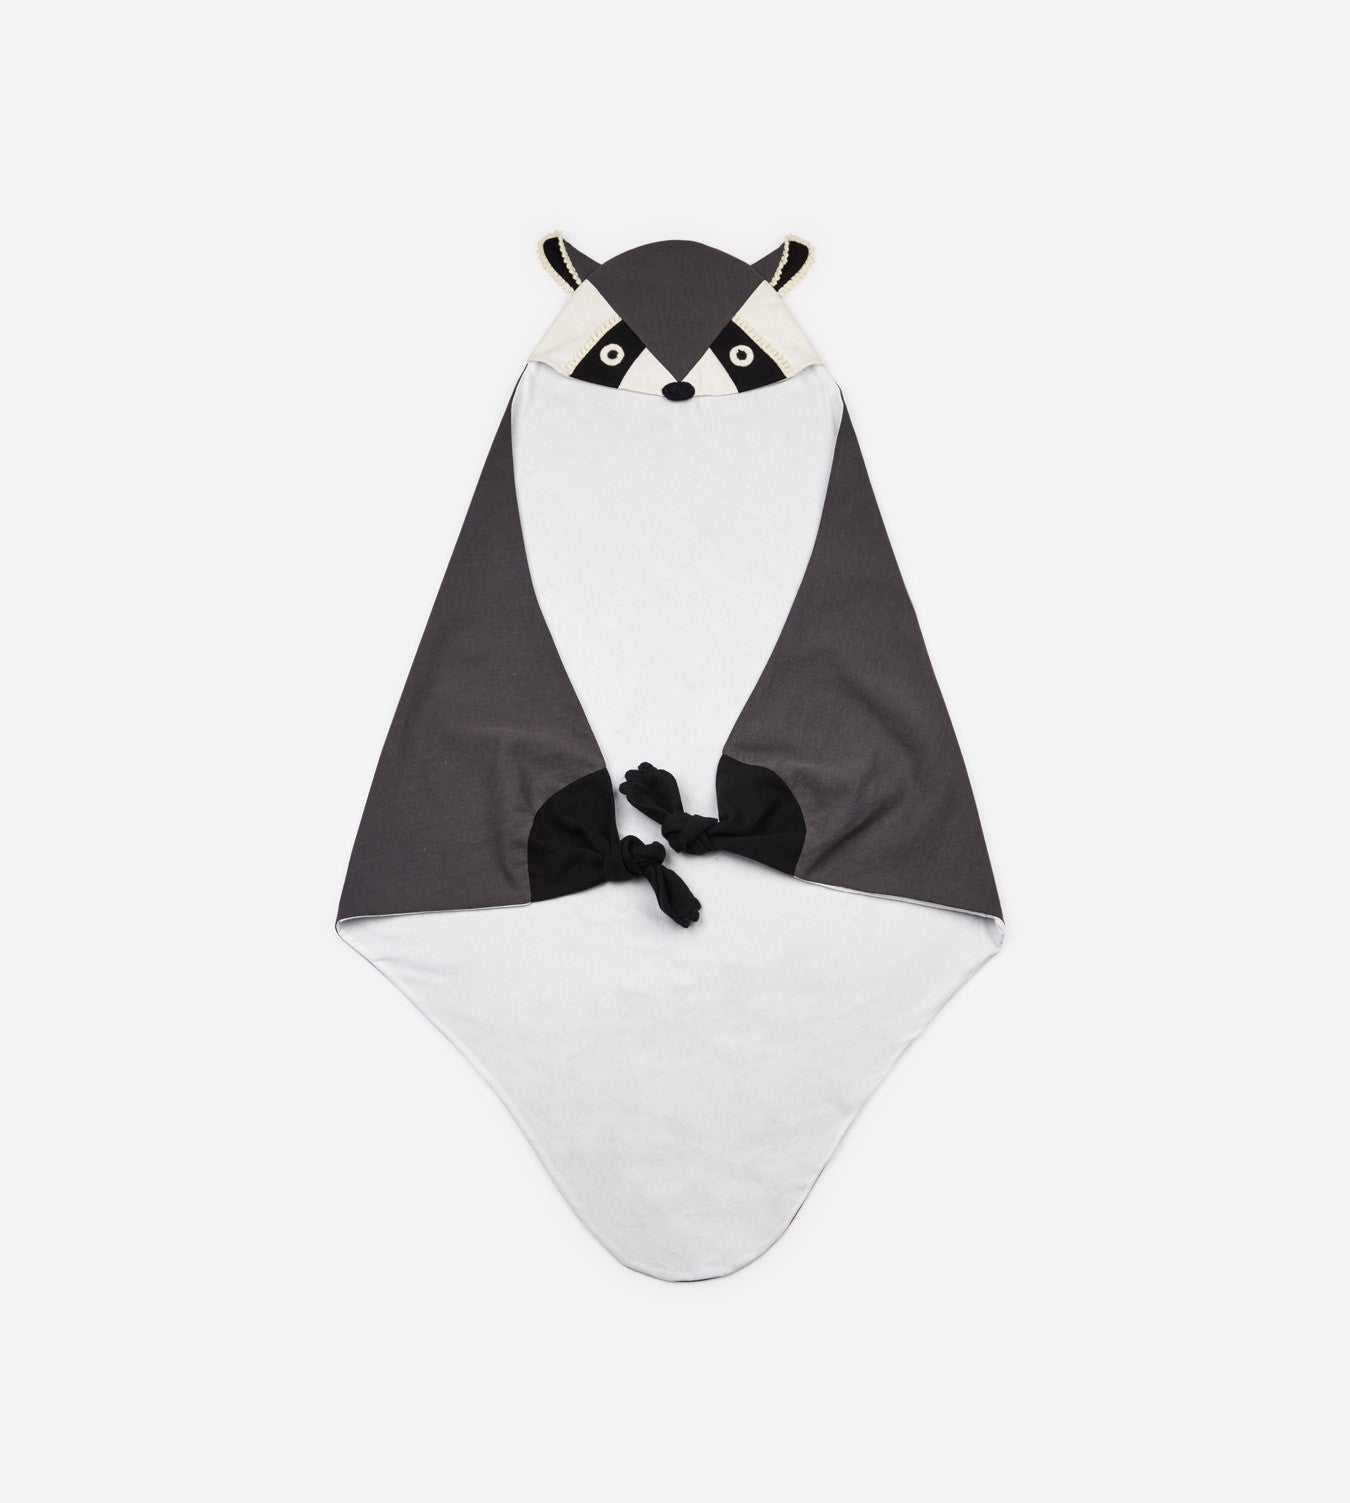 Baby Hooded Blanket - Raccoon Dr. Jones